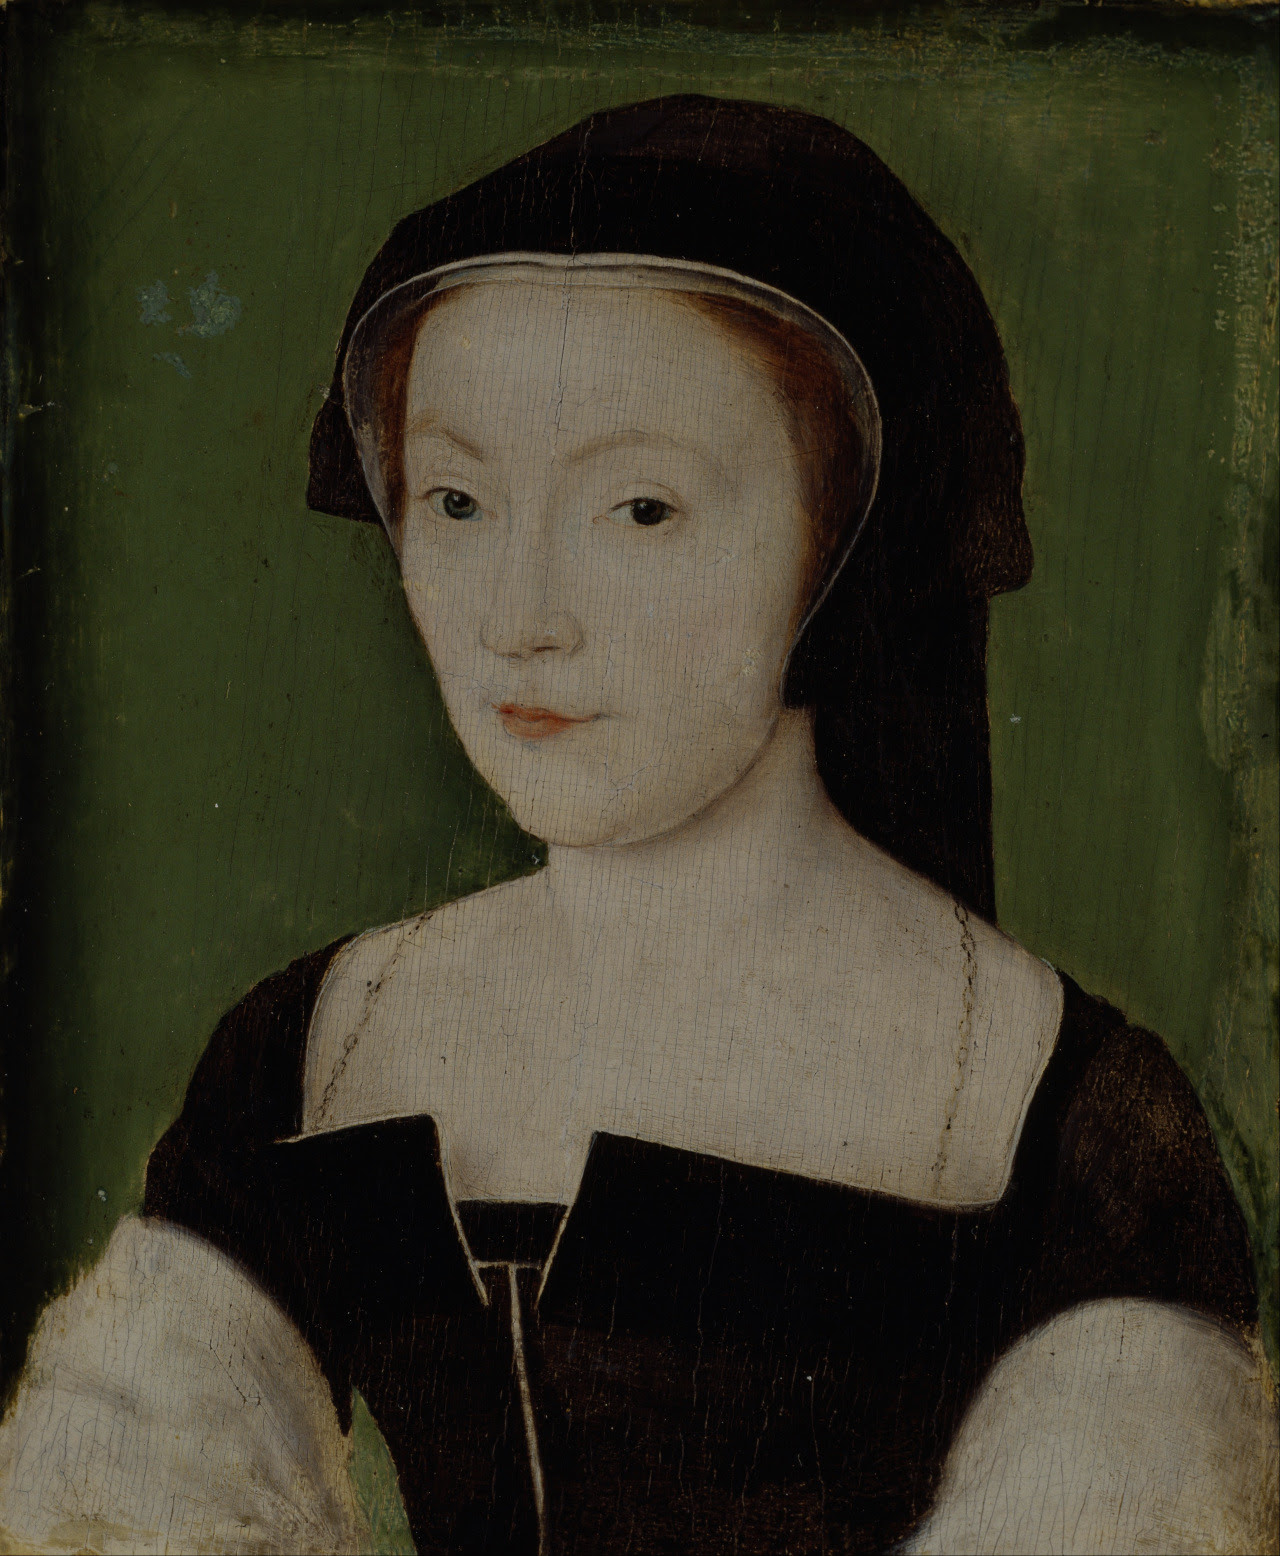 File:Maryofguise1.jpg